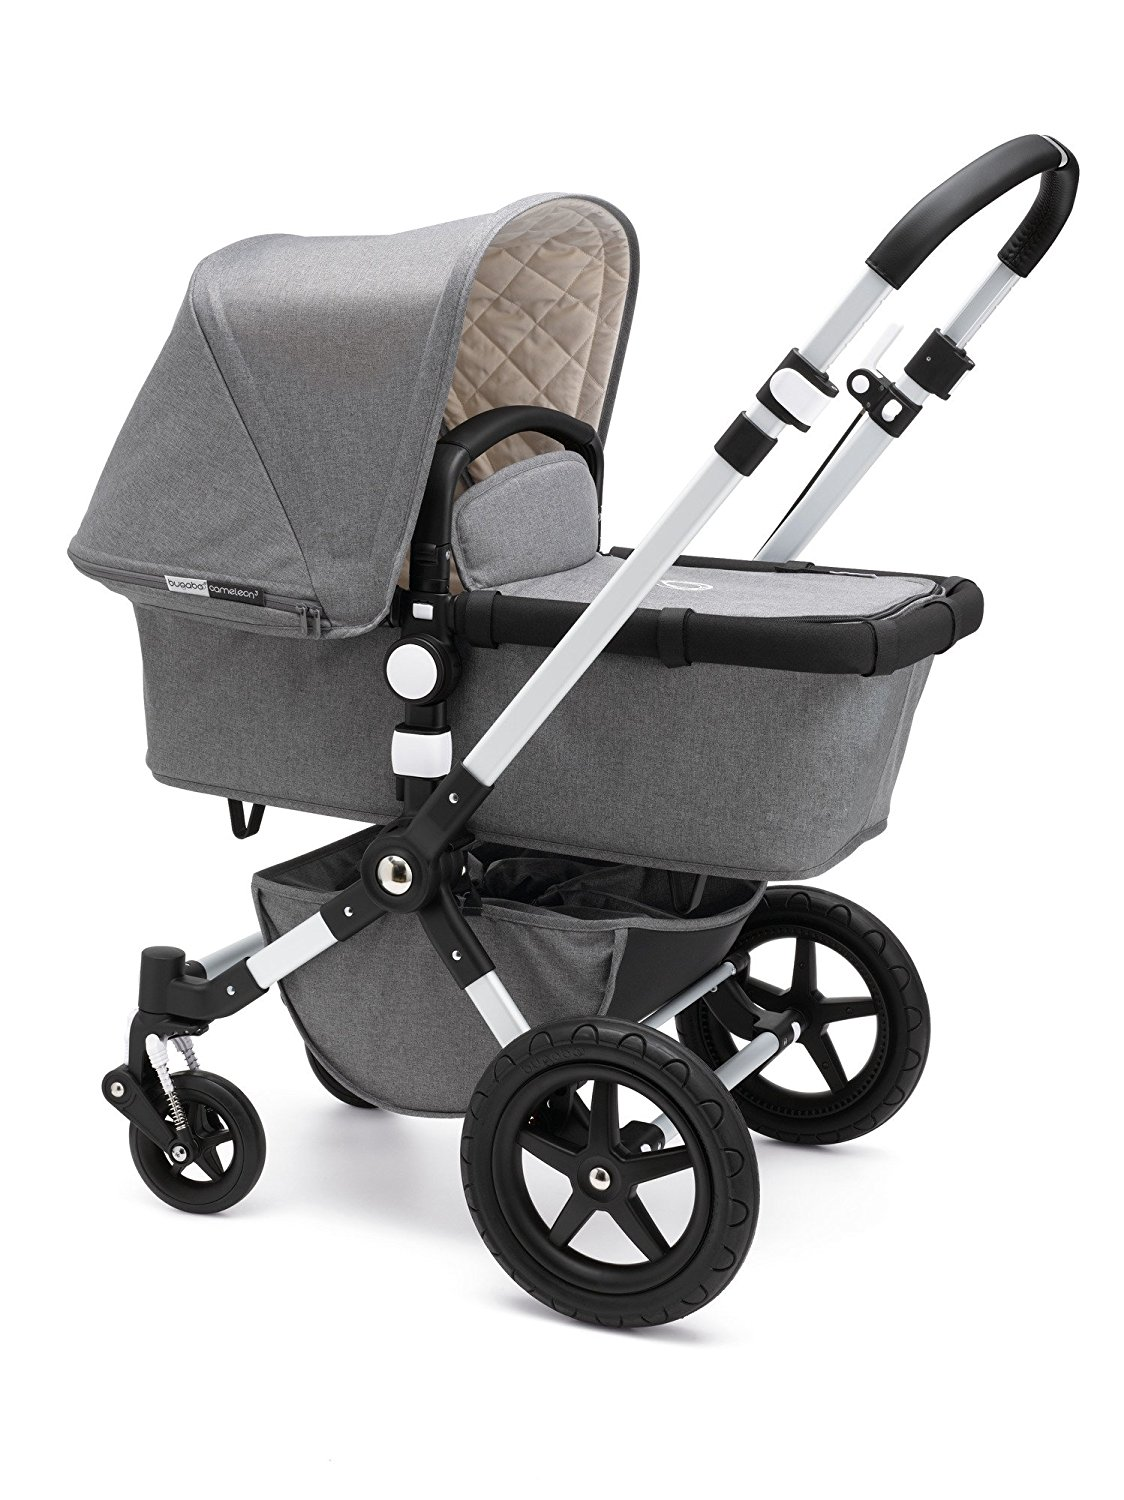 Bugaboo Cameleon 3 Maximum Weight Bugaboo Cameleon 3 Review